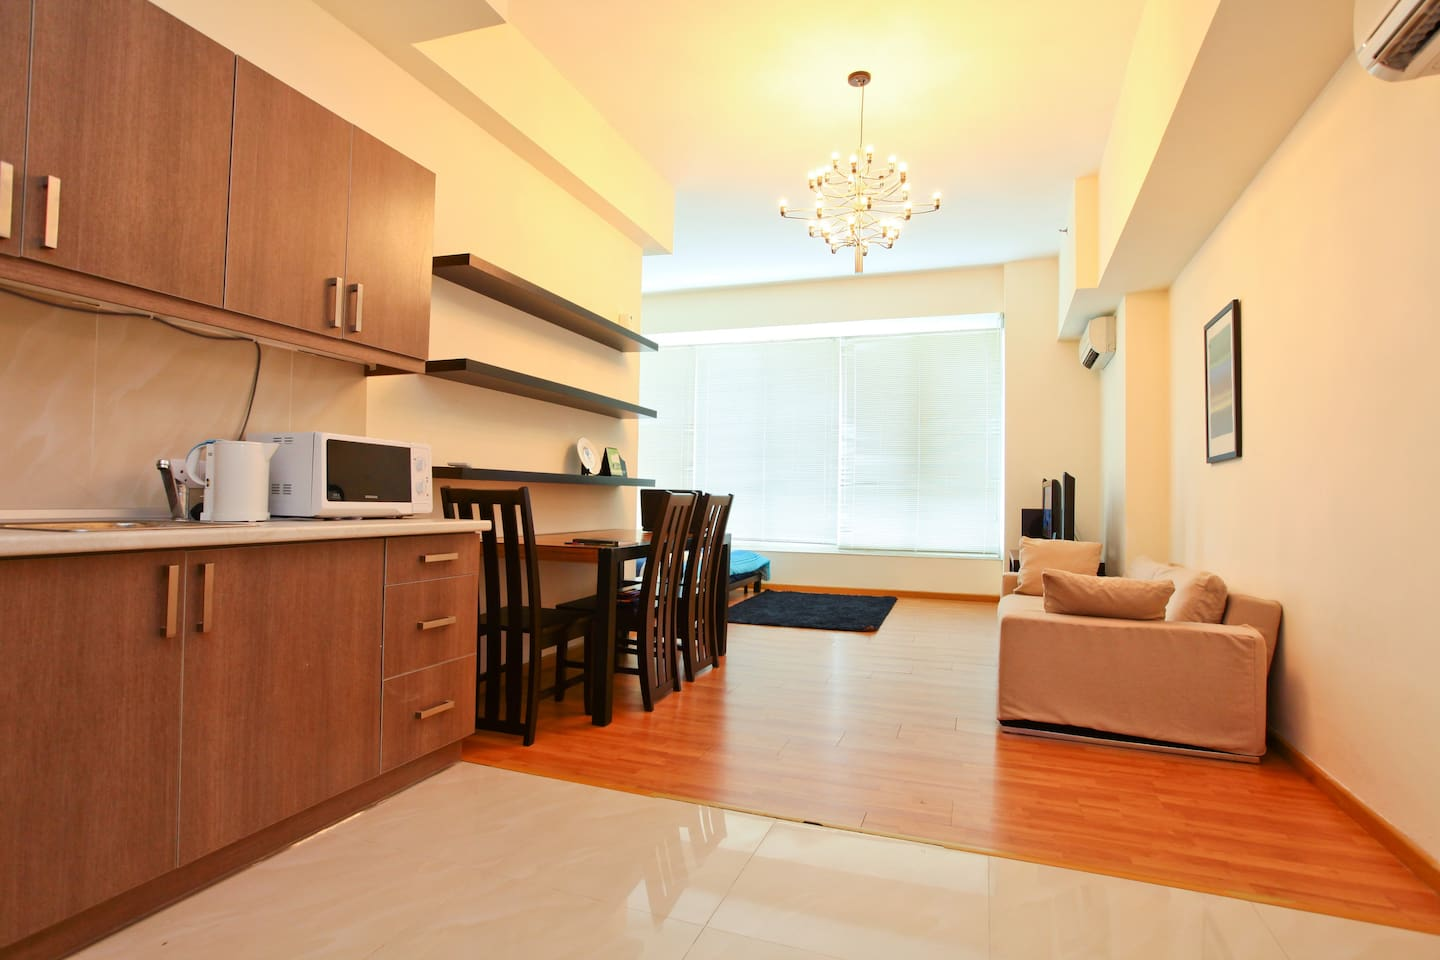 KLCC 'Parkview' Service Apartment